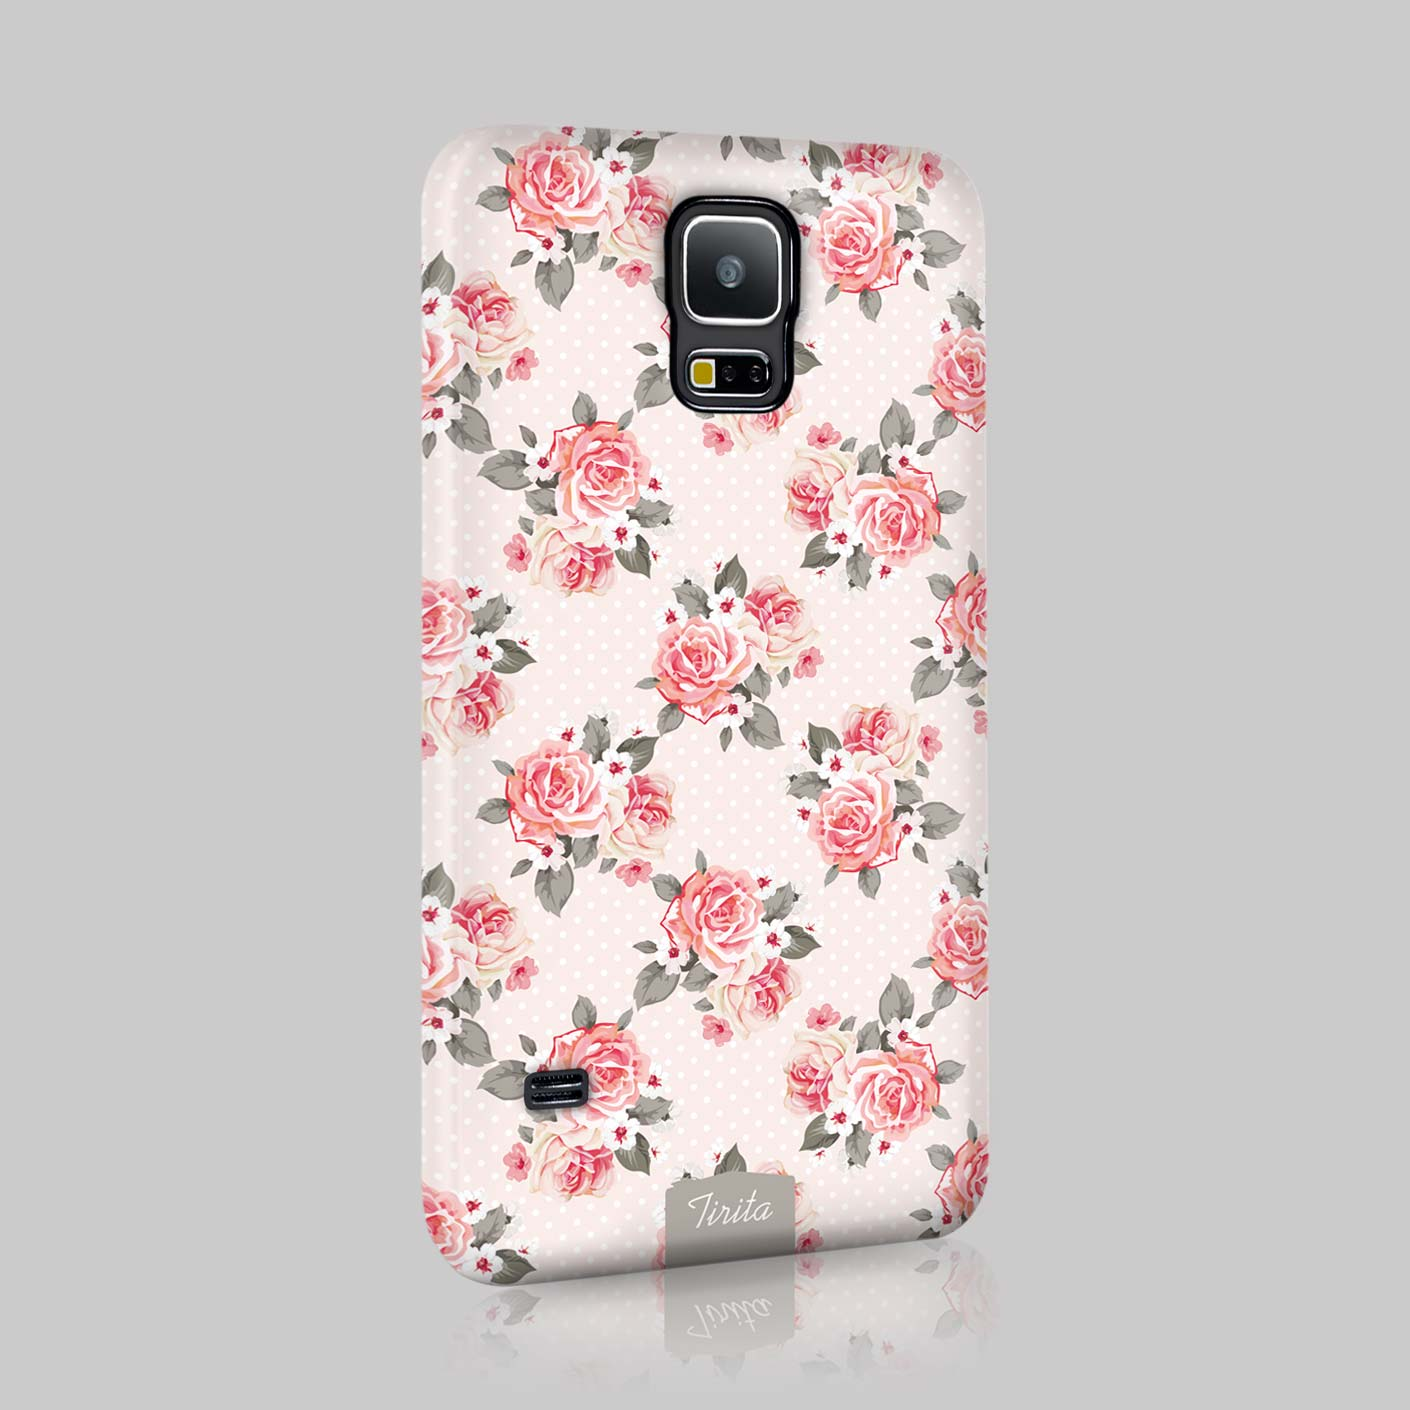 Tirita shabby chic floral retro phone case hard cover for for Case arredate shabby chic